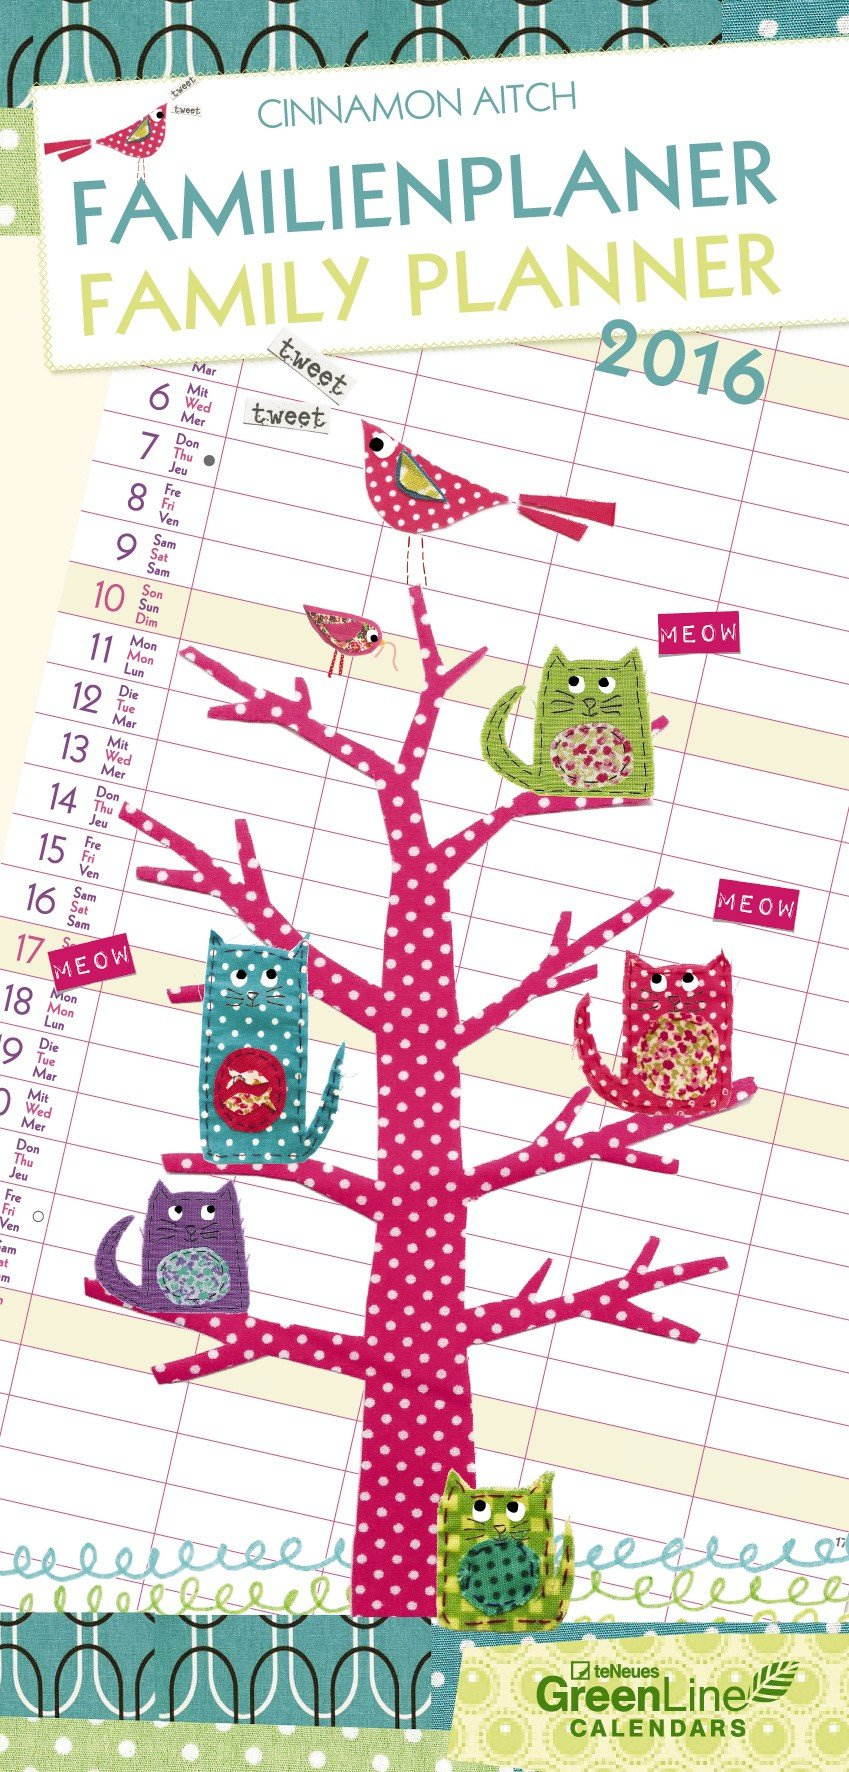 cinnamon aitch 2016 family planner green line characters 23 x